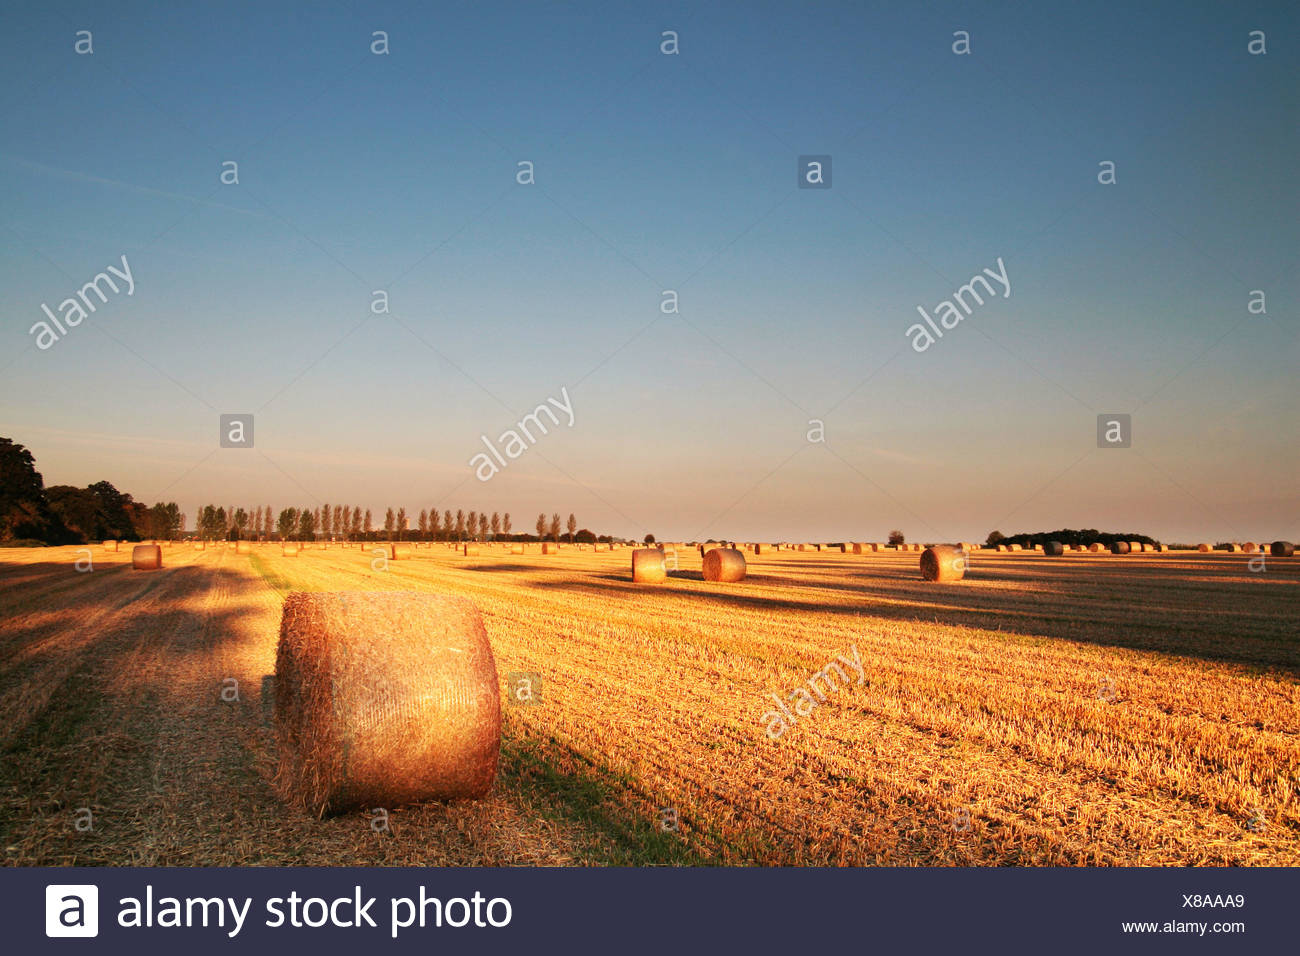 round hay bales in a field at sunrise - Stock Image